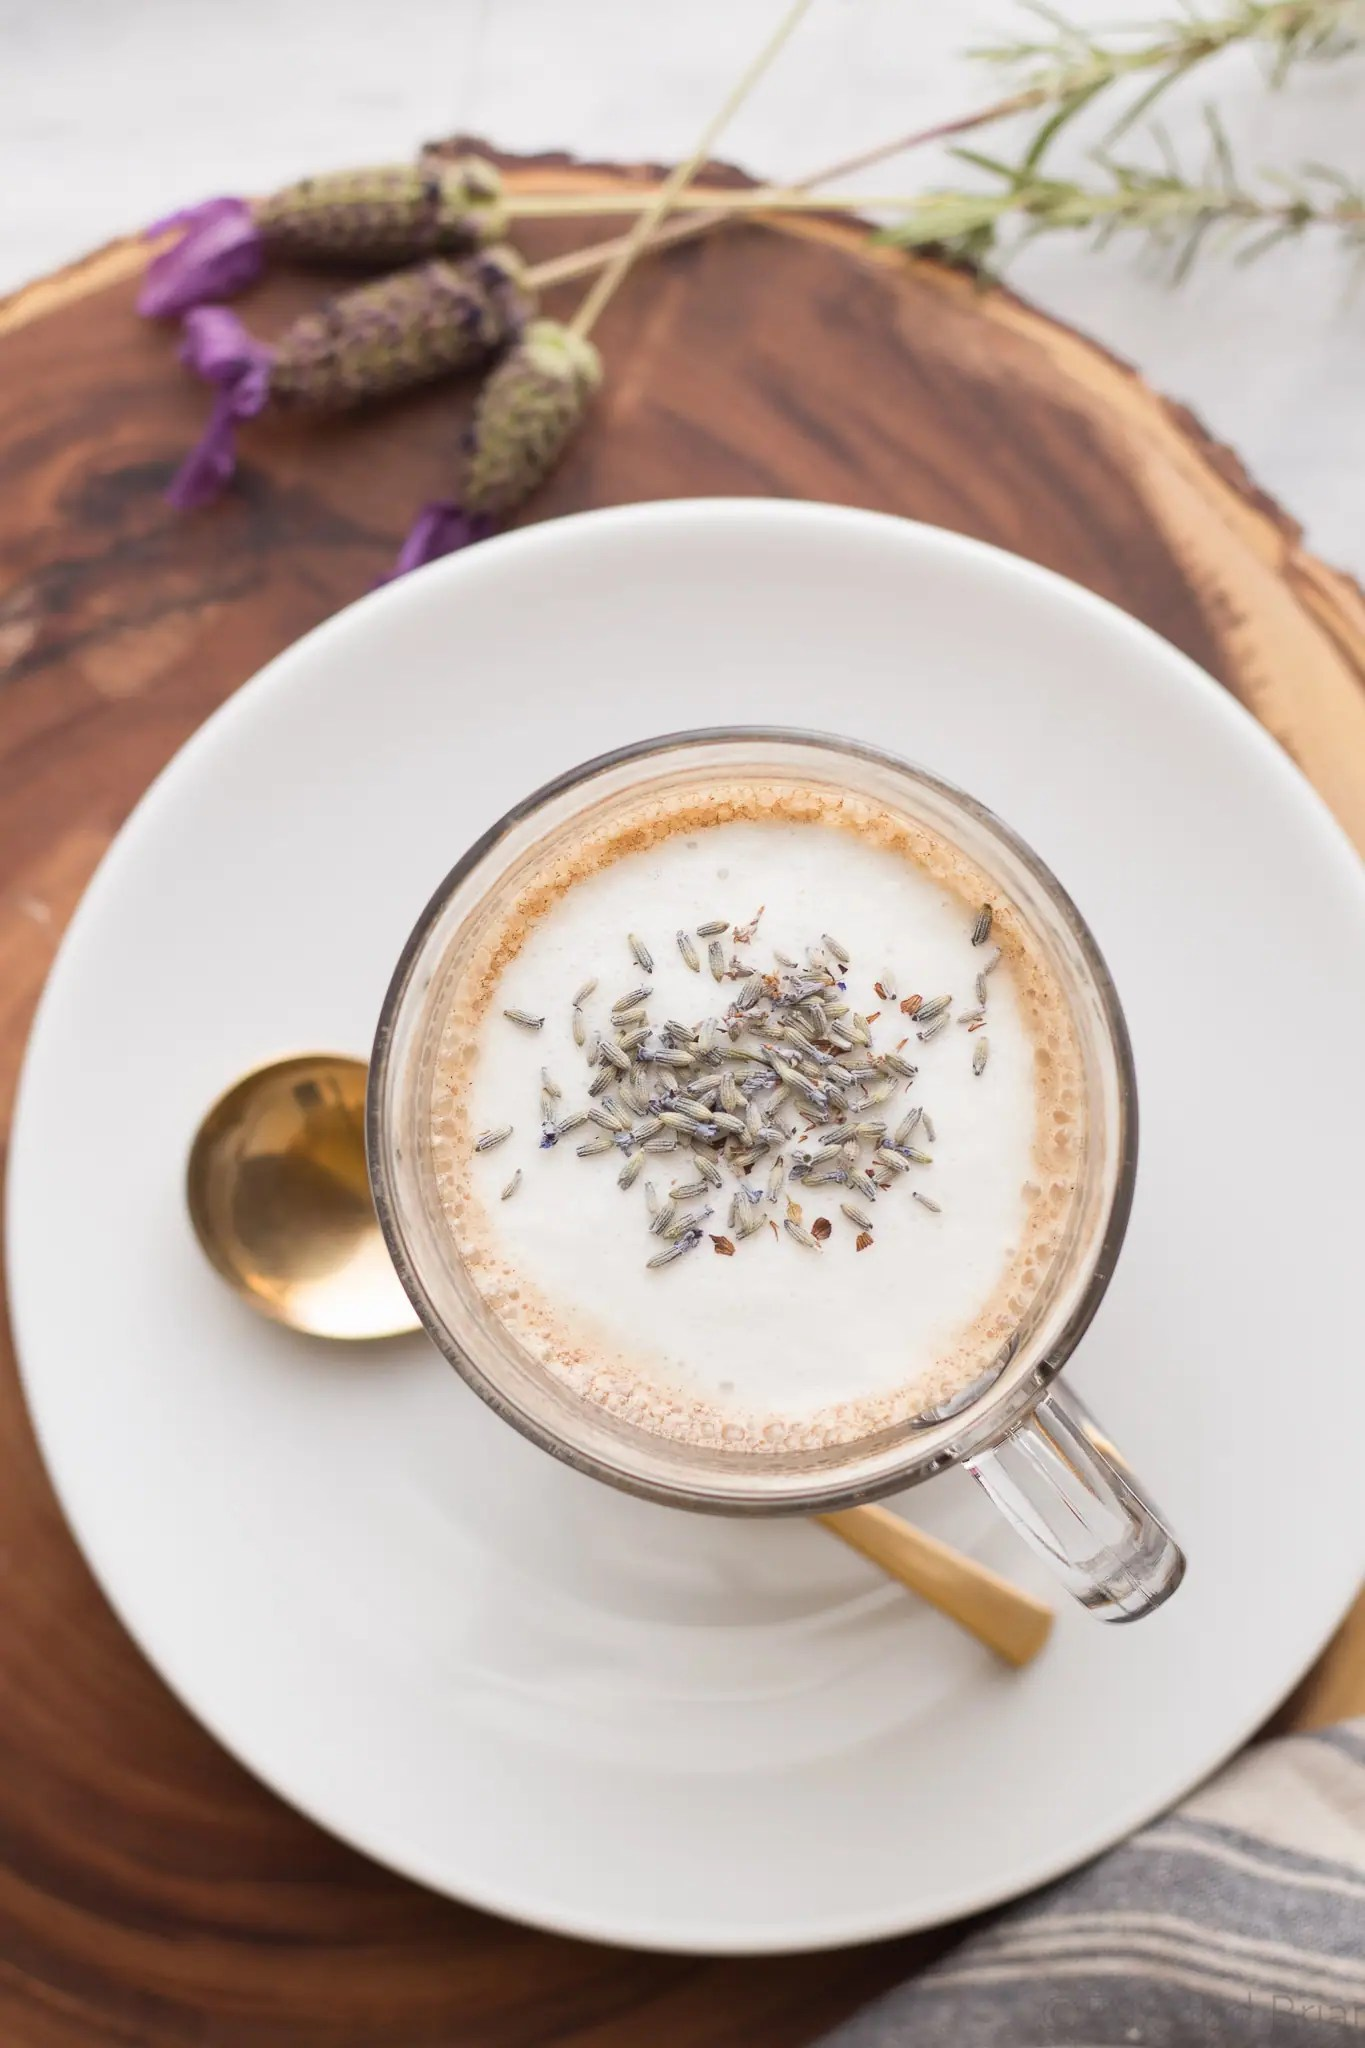 Make your own lavender latte at home, without any fancy equipment